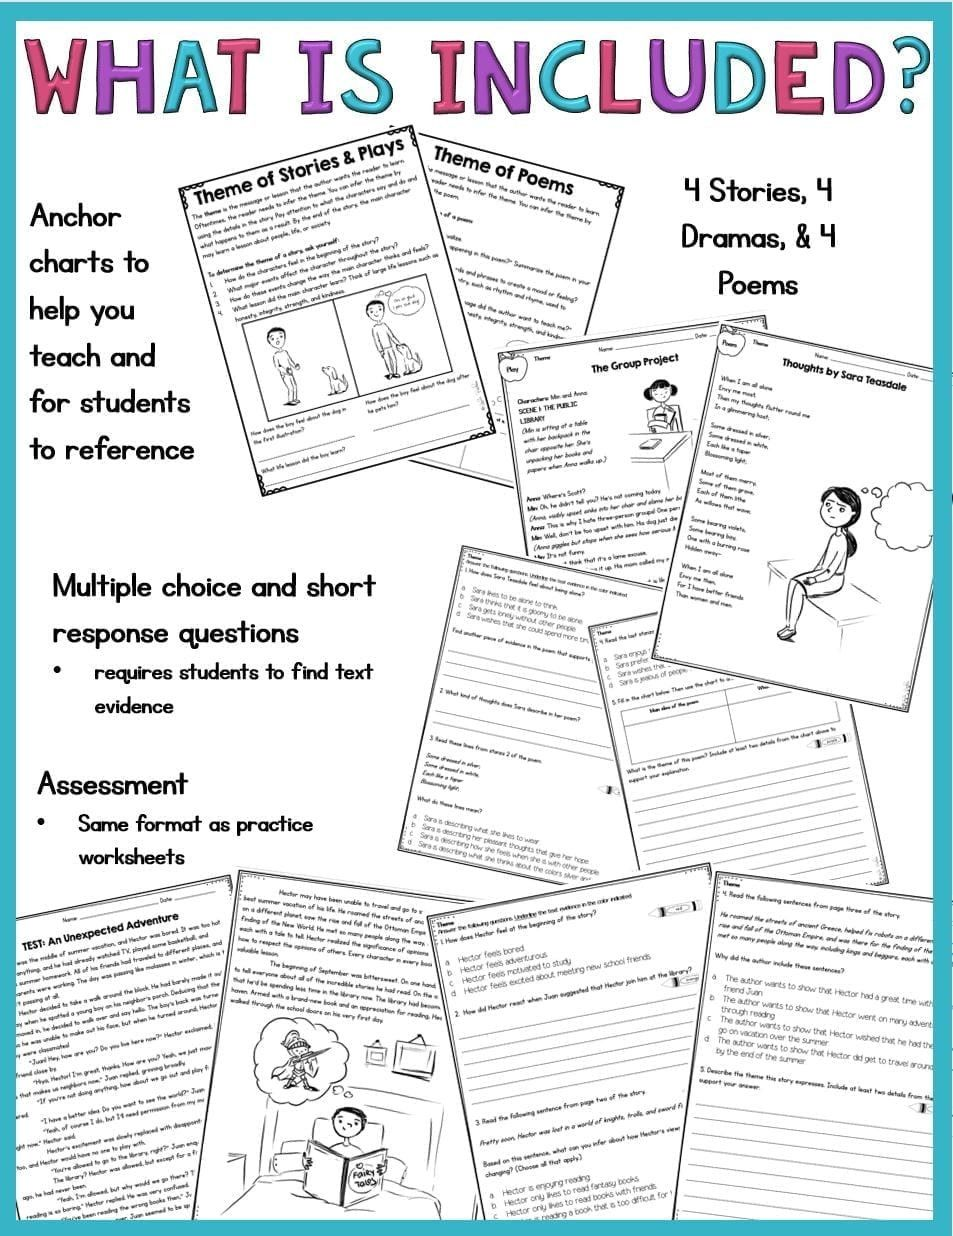 Theme Worksheets For 5th Grade Theme In Stories Plays And Poems 4th Grade Rl 4 2 And 5th Grade Rl 5 2 Text Evidence Text Features Worksheet Poetry Worksheets